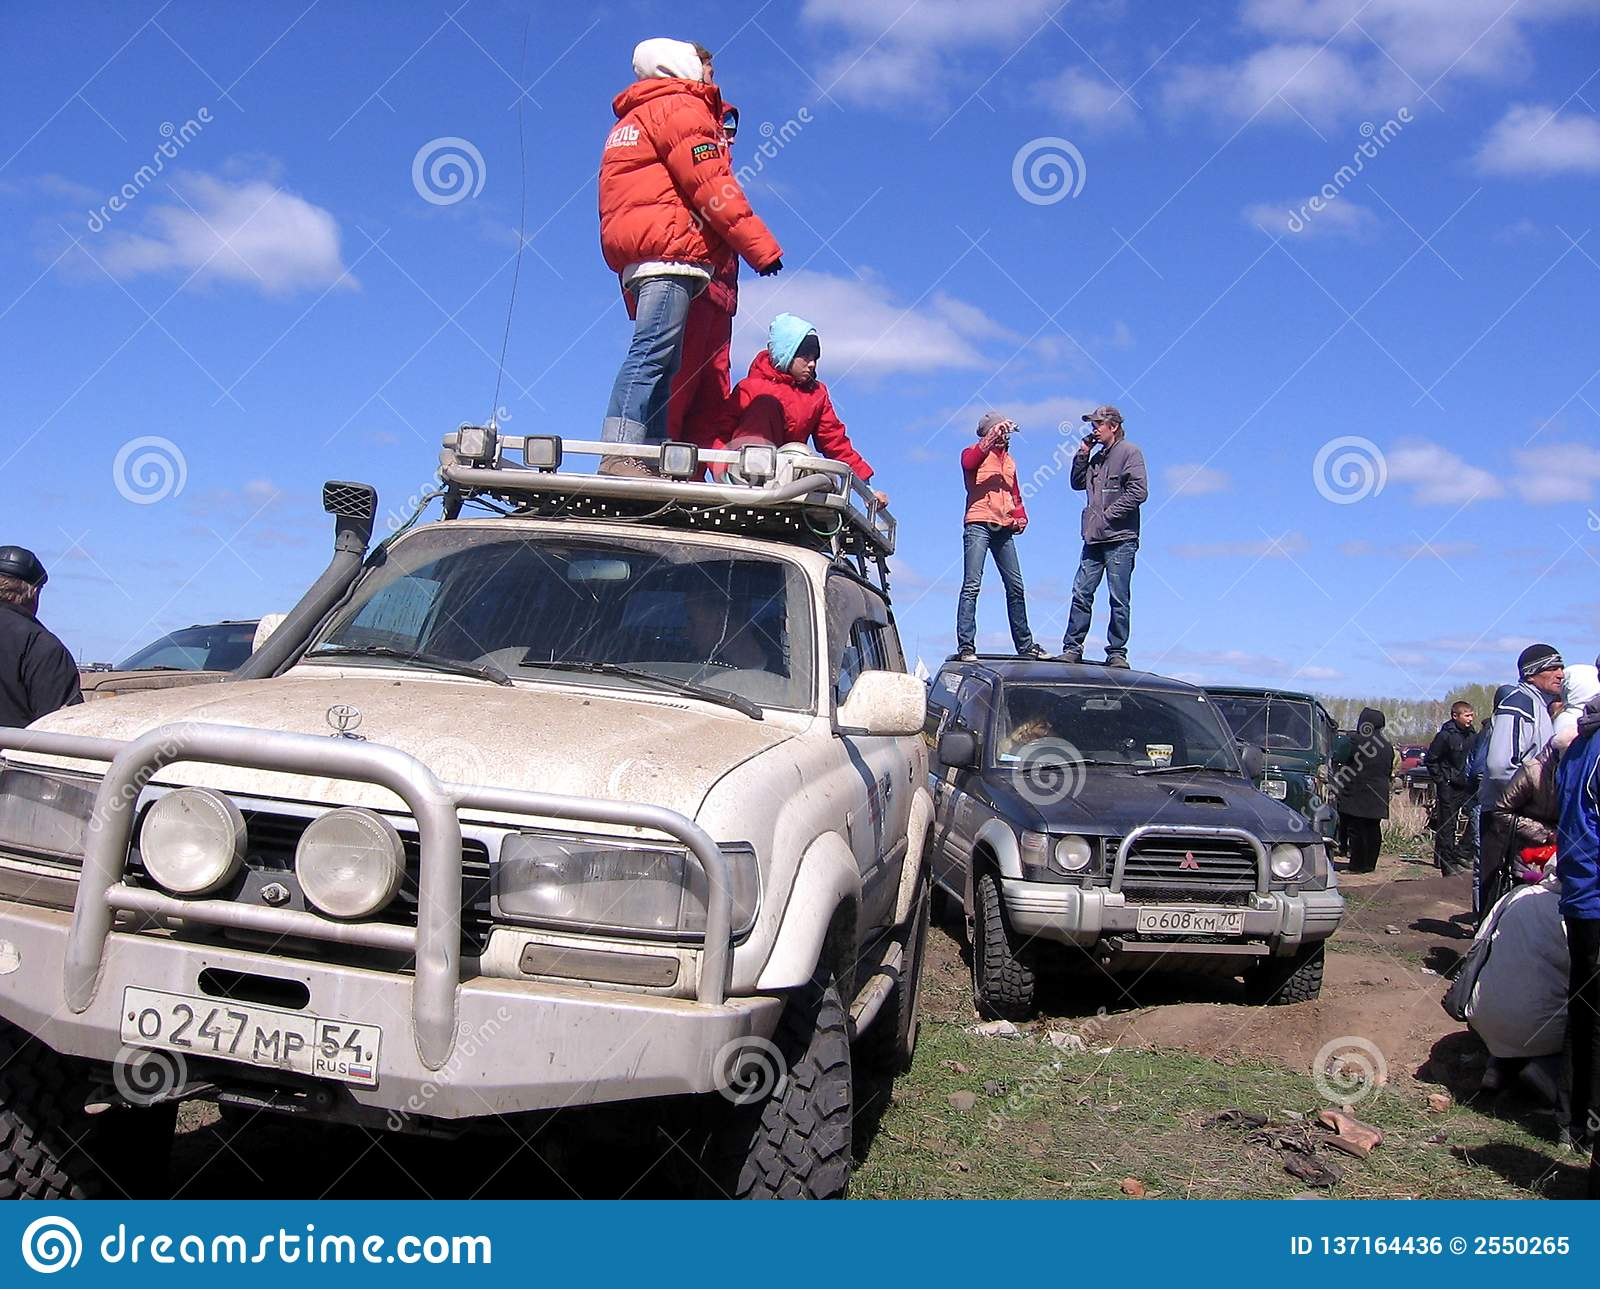 People stand on the roof of the jeeps racing SUVs crowd of spectators watching a stuck car being pushed out of the mud